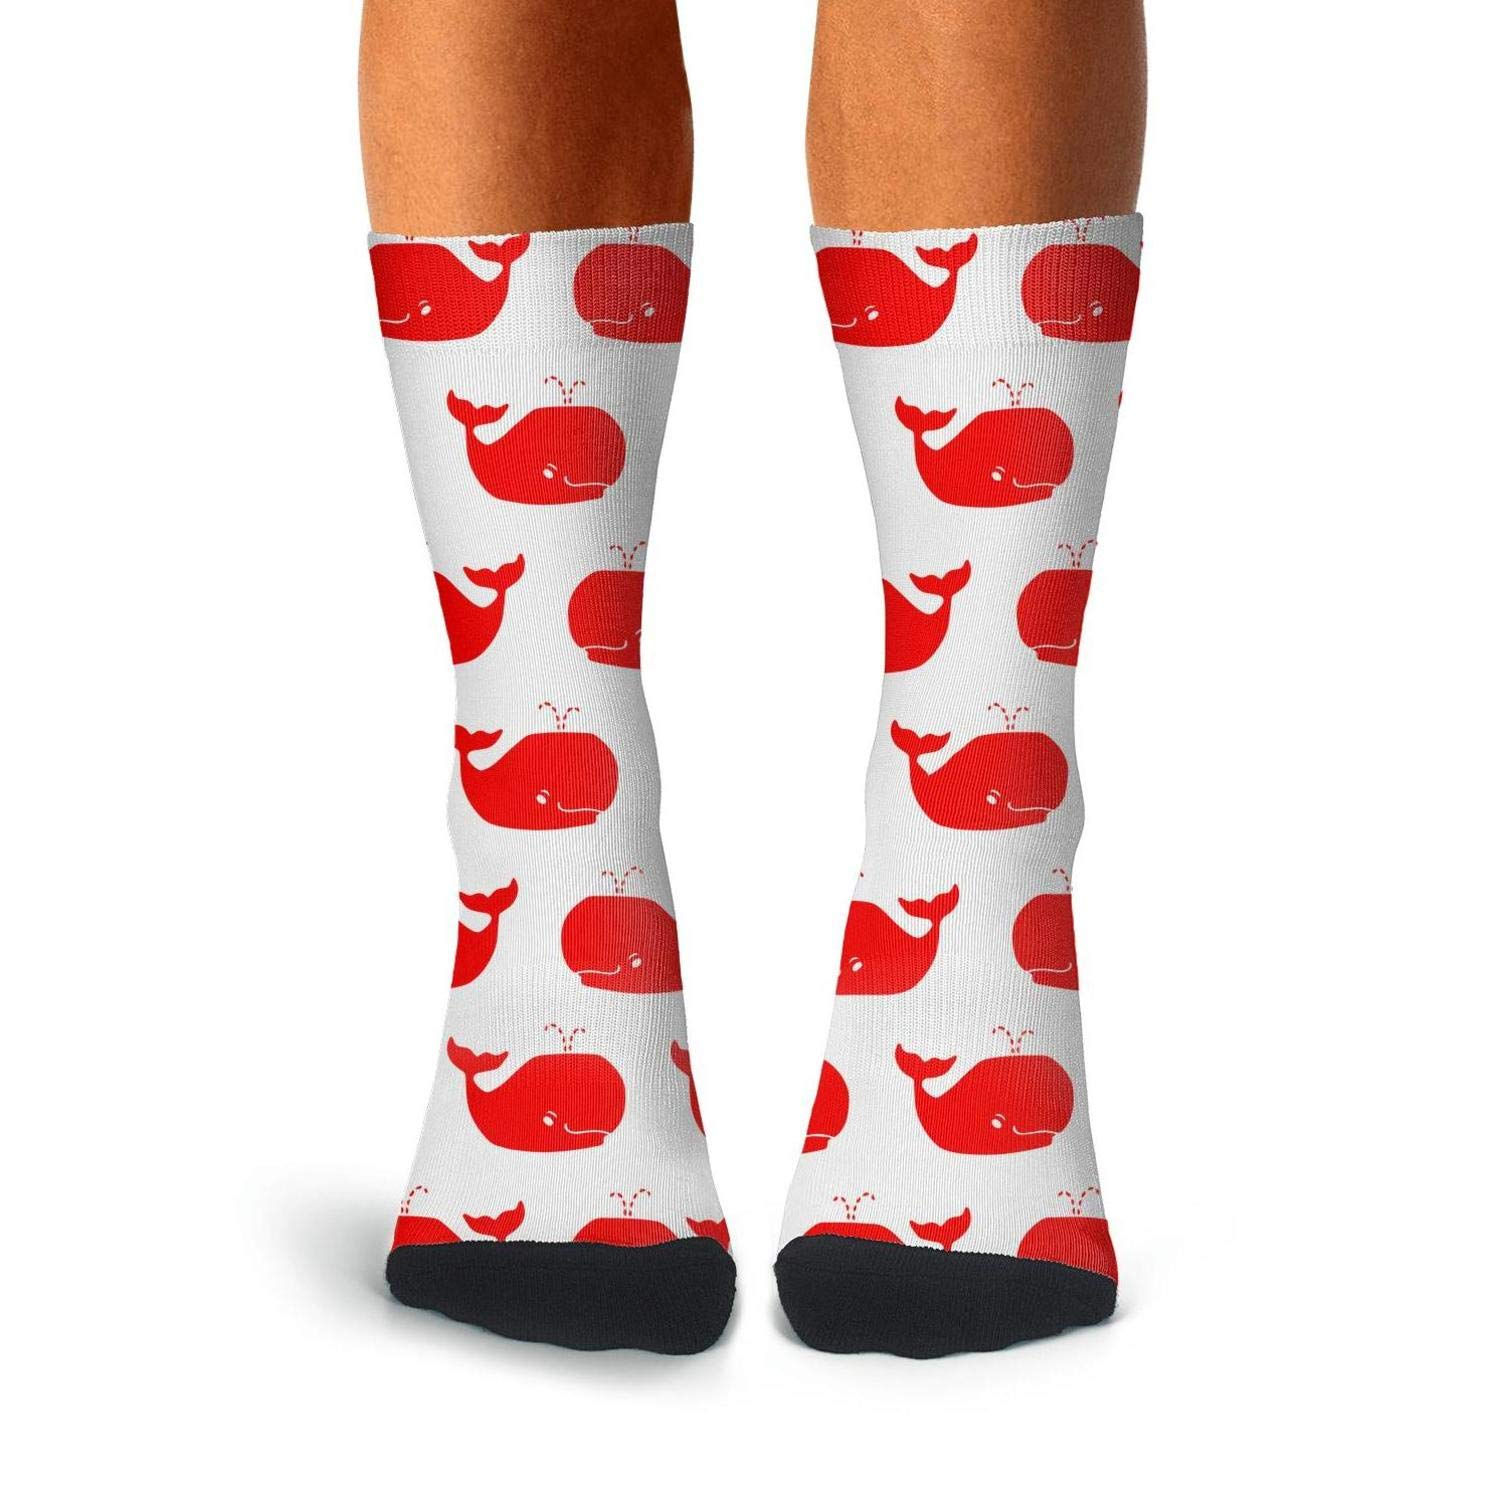 Mens Athletic Cushion Crew Sock Red And White Whales Whale Repeat Long Sock Casual